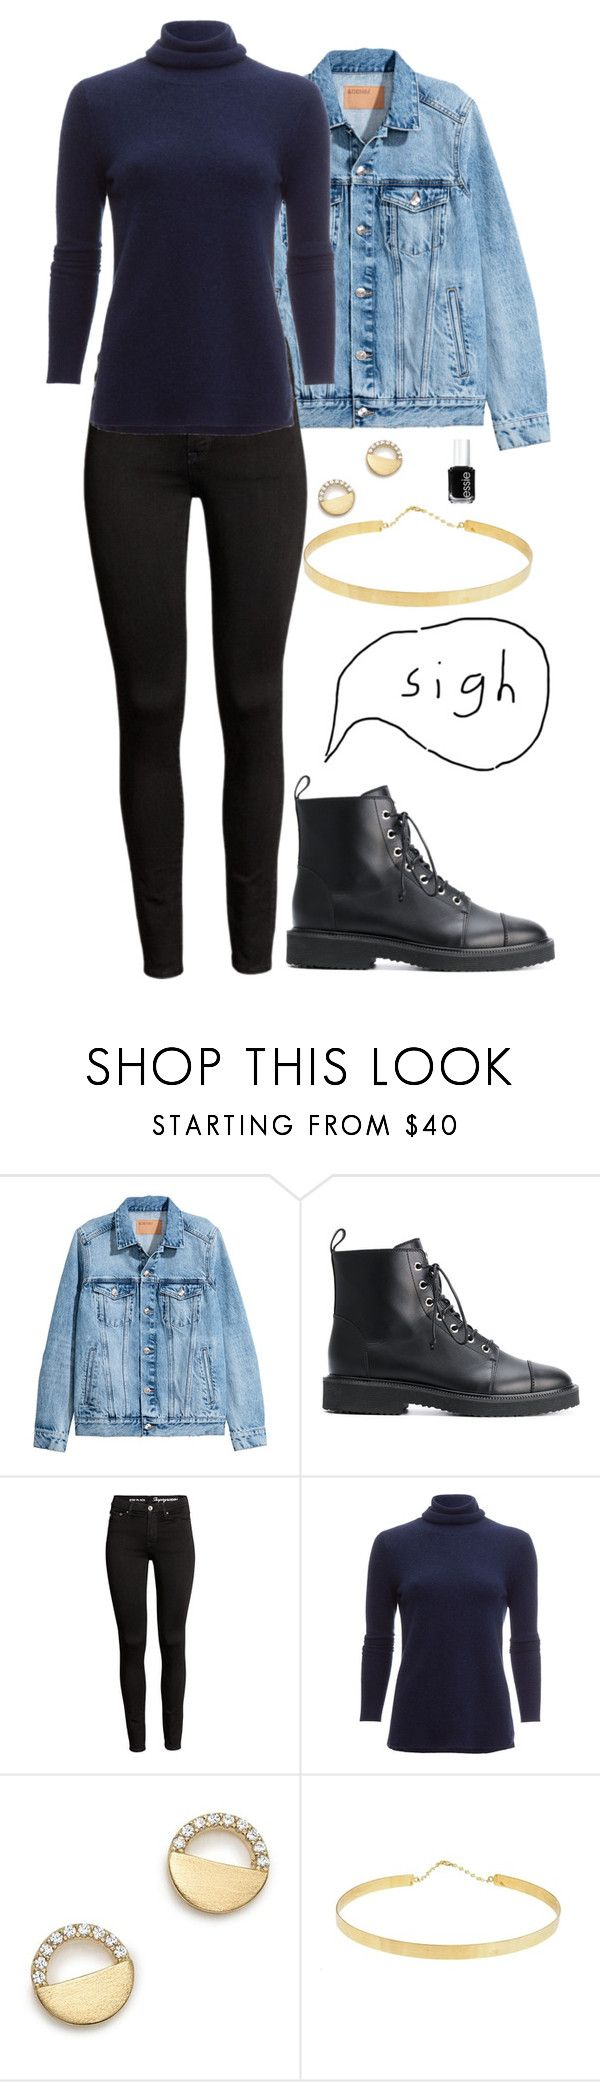 """Sunday 25.02"" by garz on Polyvore featuring H&M, Giuseppe Zanotti, White + Warren, Bloomingdale's, Lana Jewelry and Essie"